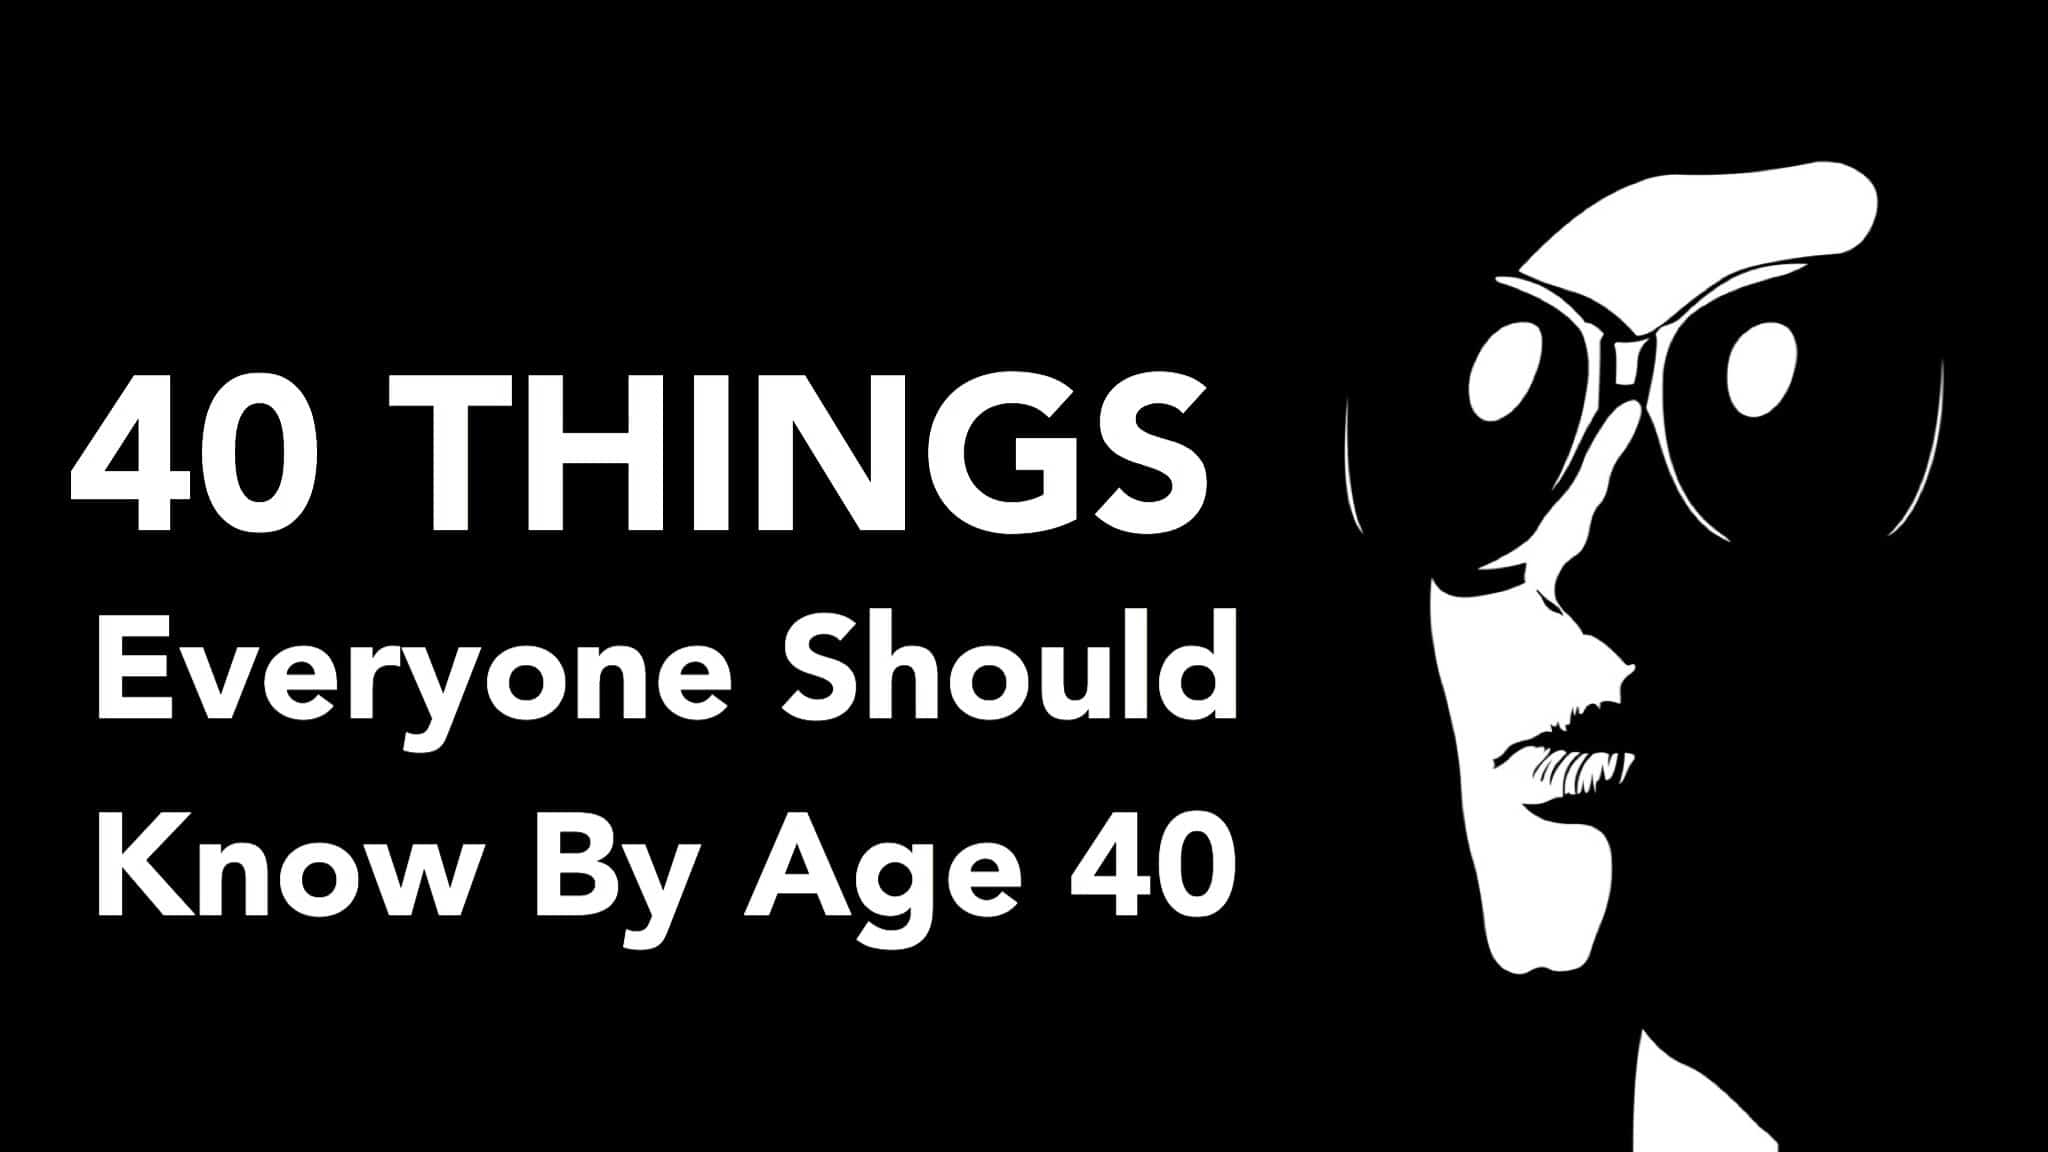 40 things by 40